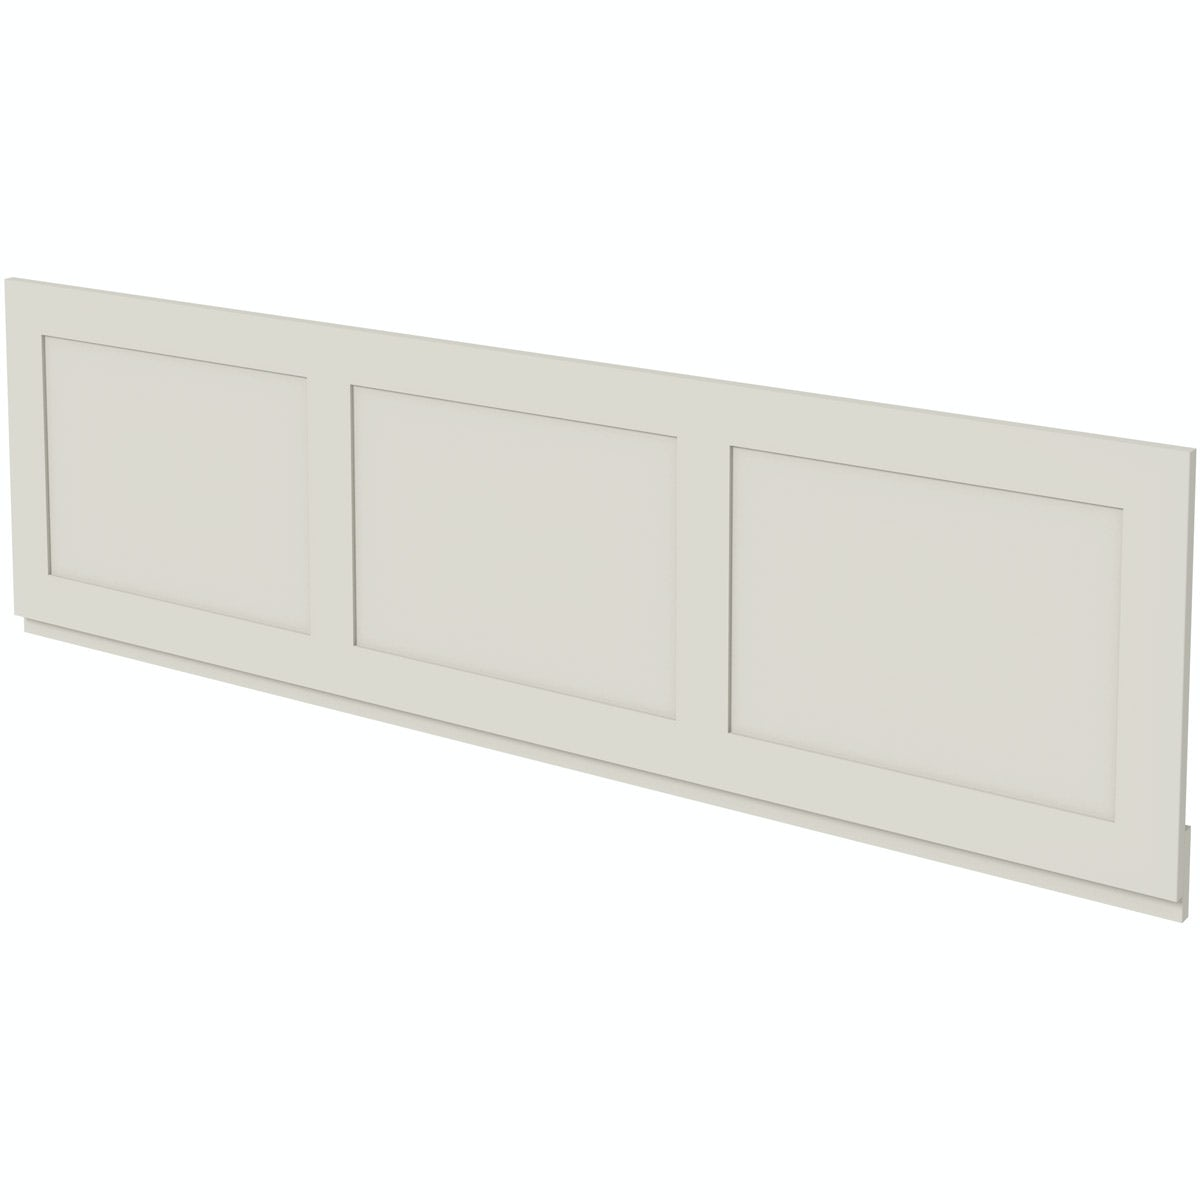 Camberley ivory bath front panel 1700mm